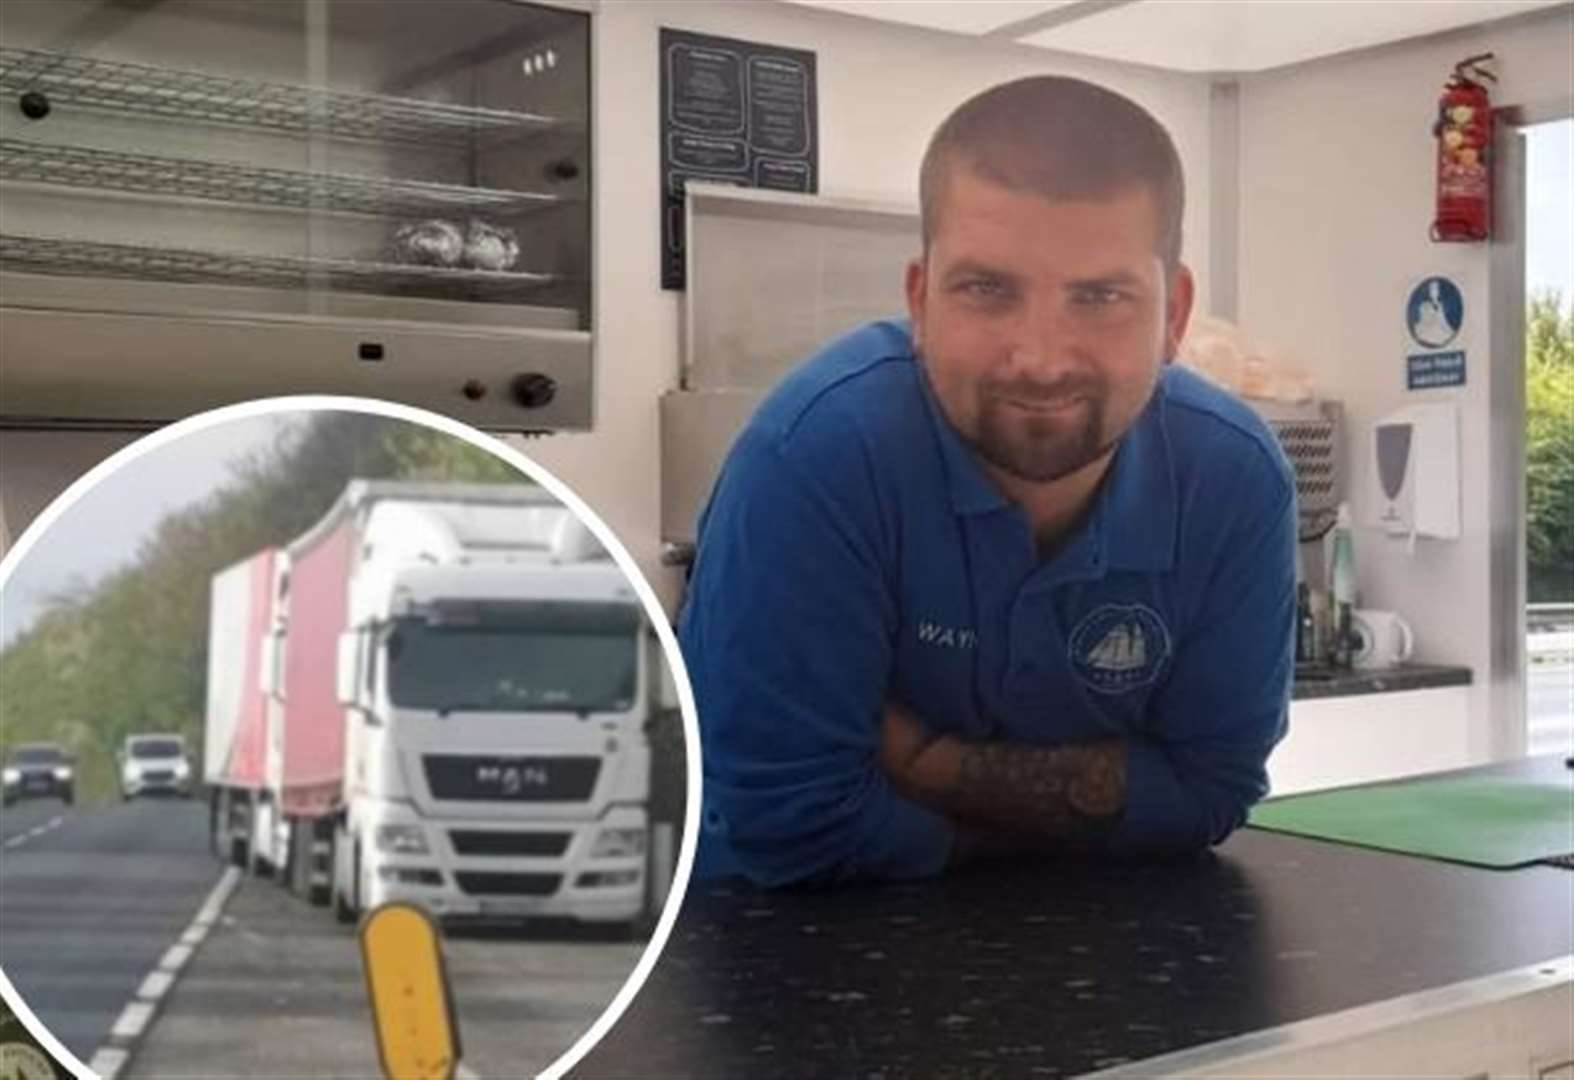 'I can't set up my food wagon because lorries block lay-by'